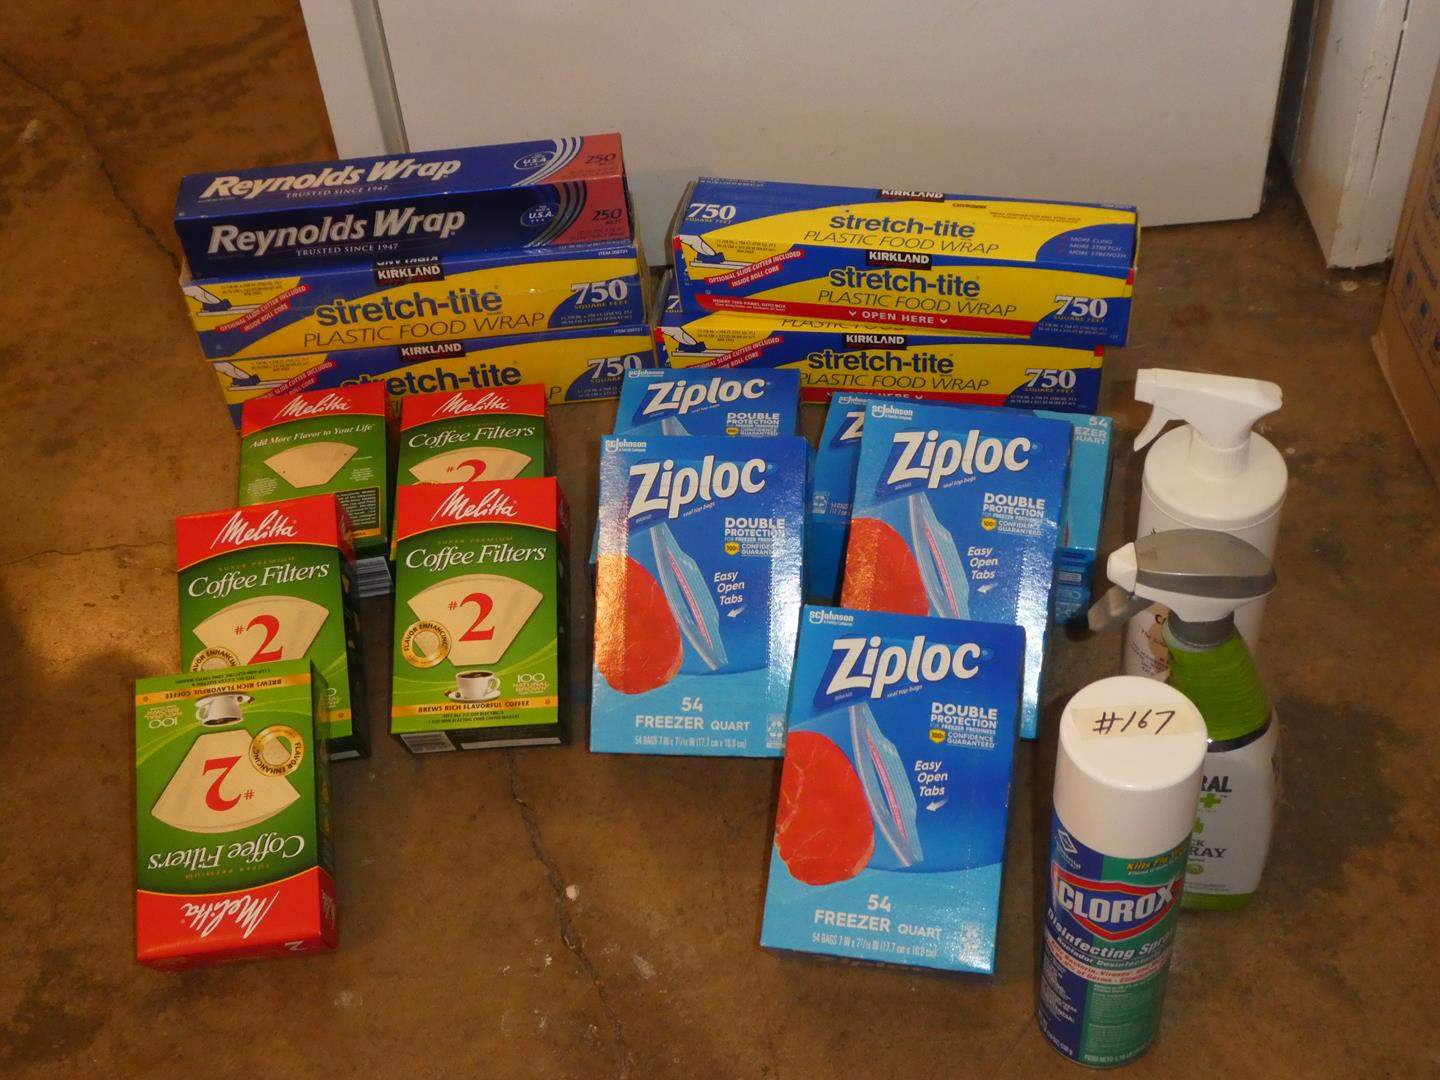 Lot # 167 - Coffee Filters, Reynolds Wrap, Stretch-Tite, Zip Lock Bags & Cleaning Supplies